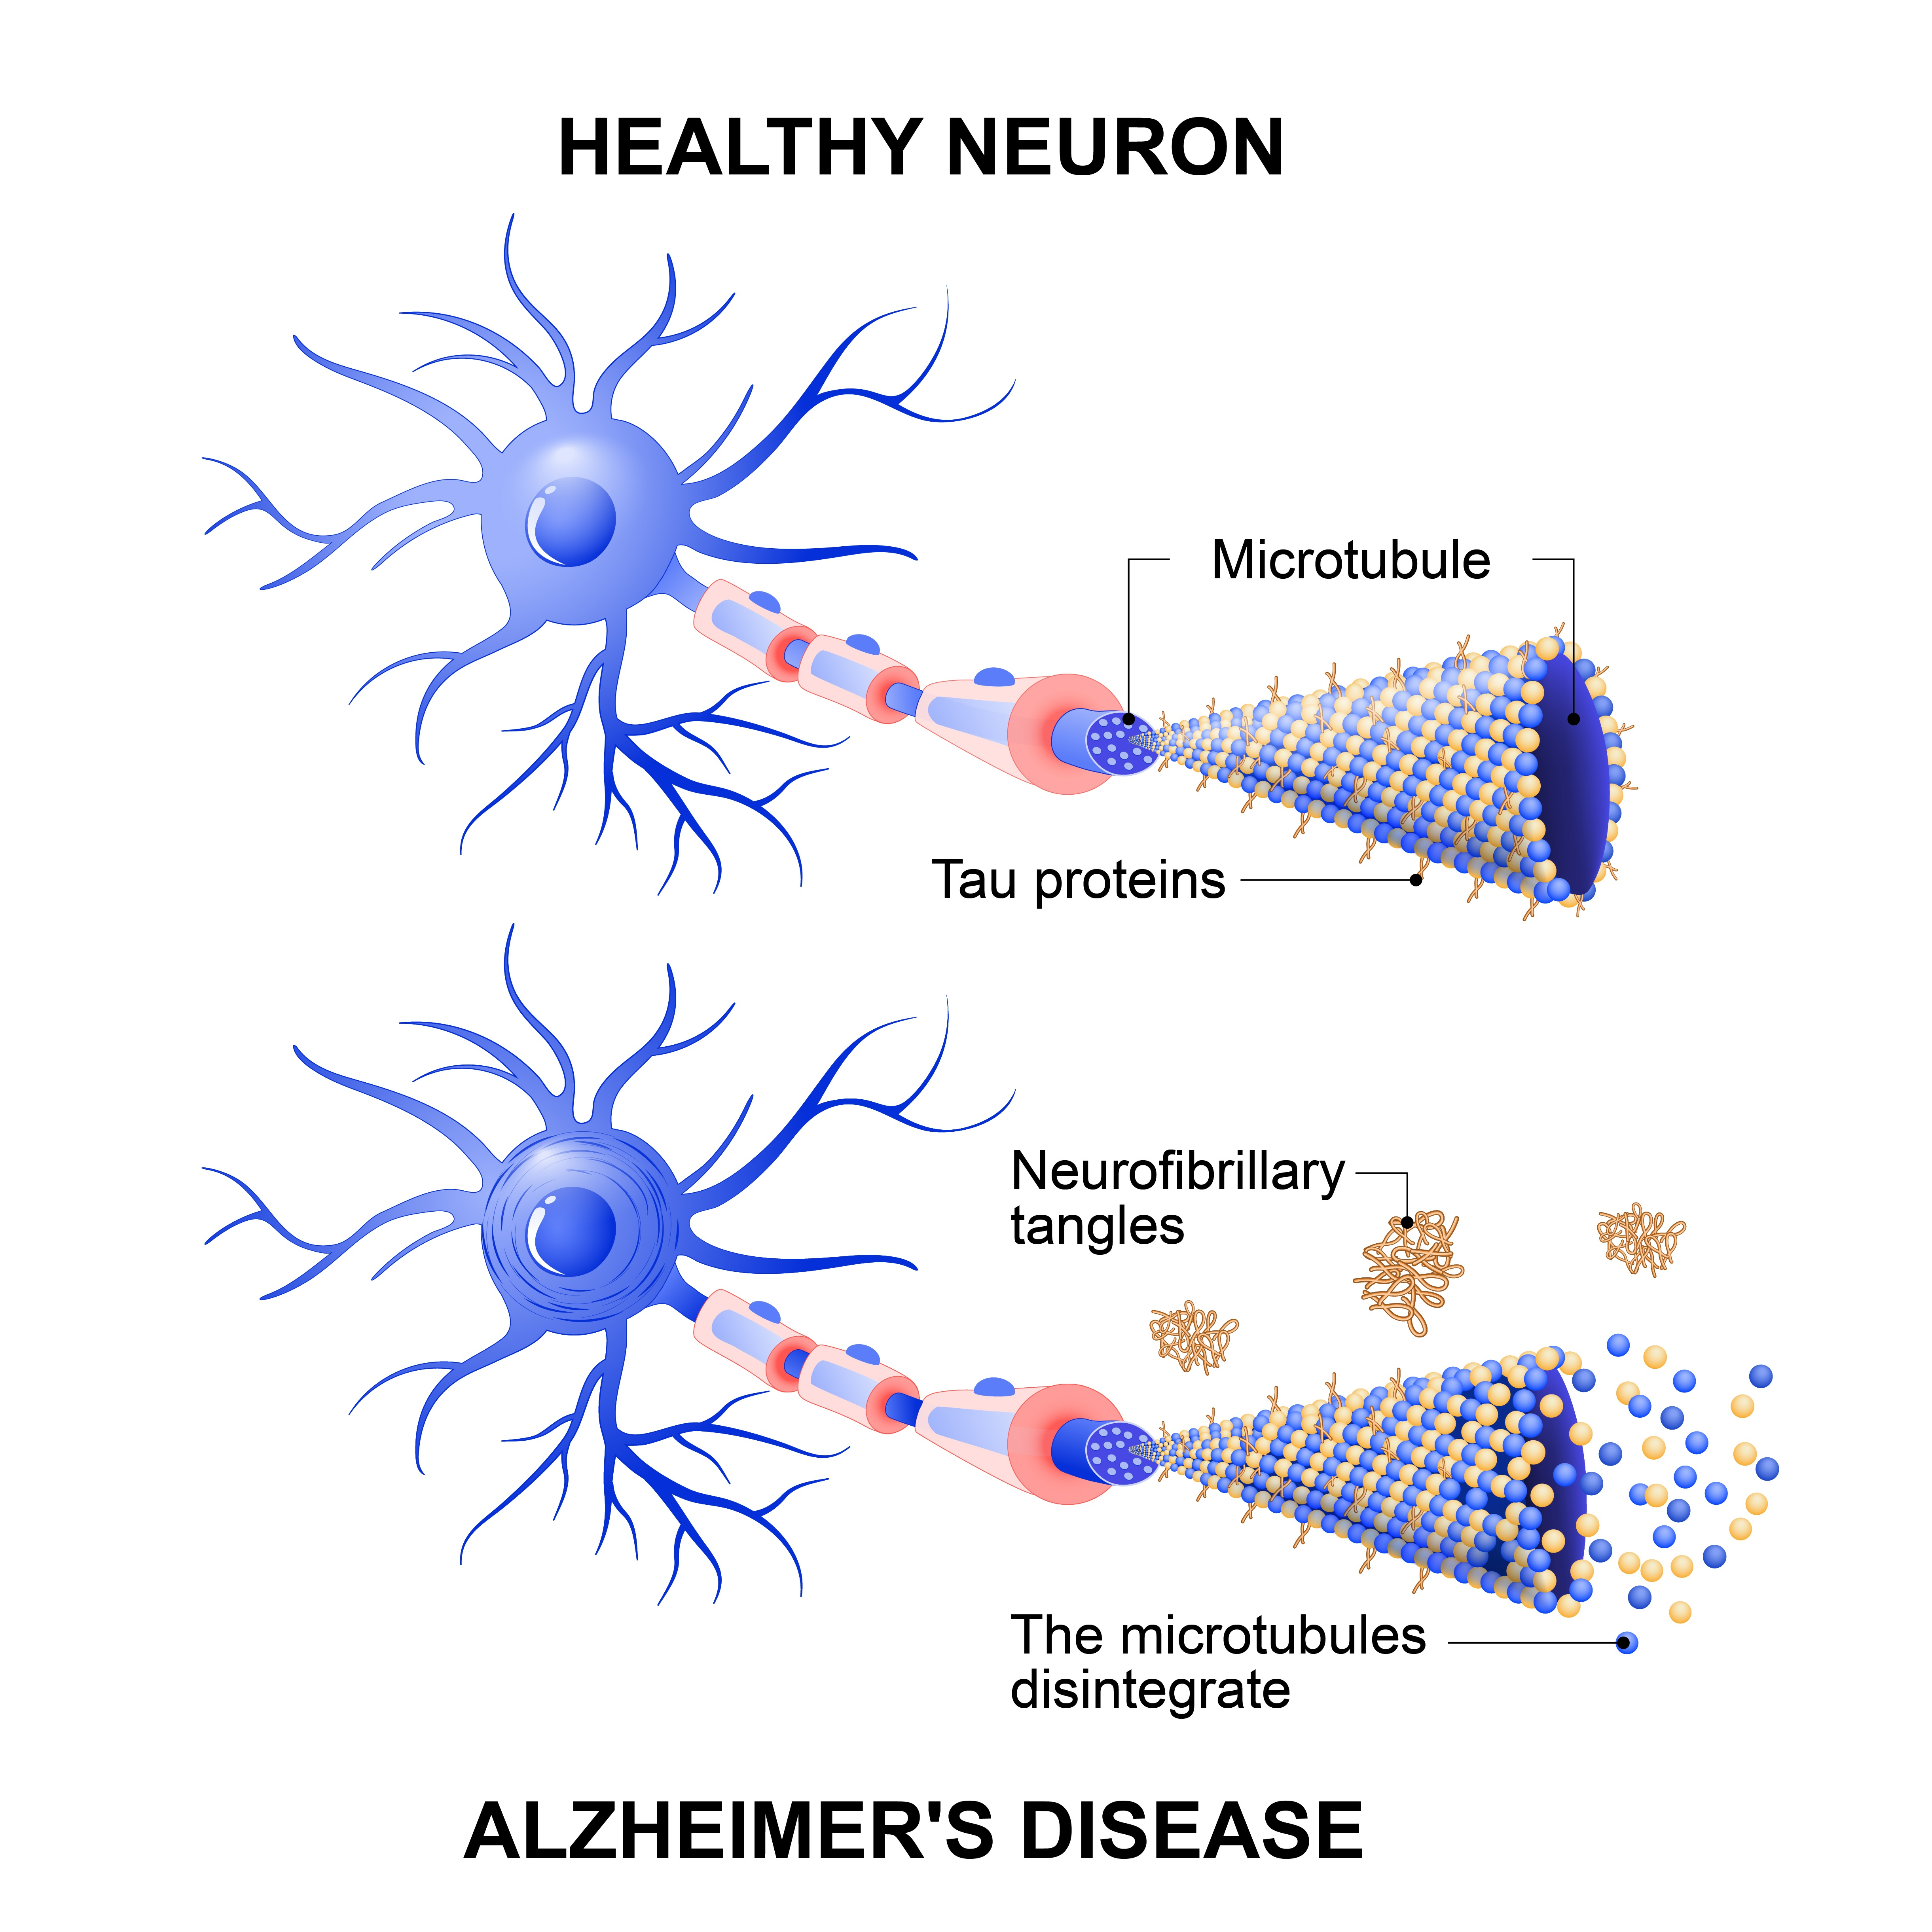 Healthy cell vs neuron with Alzheimer's